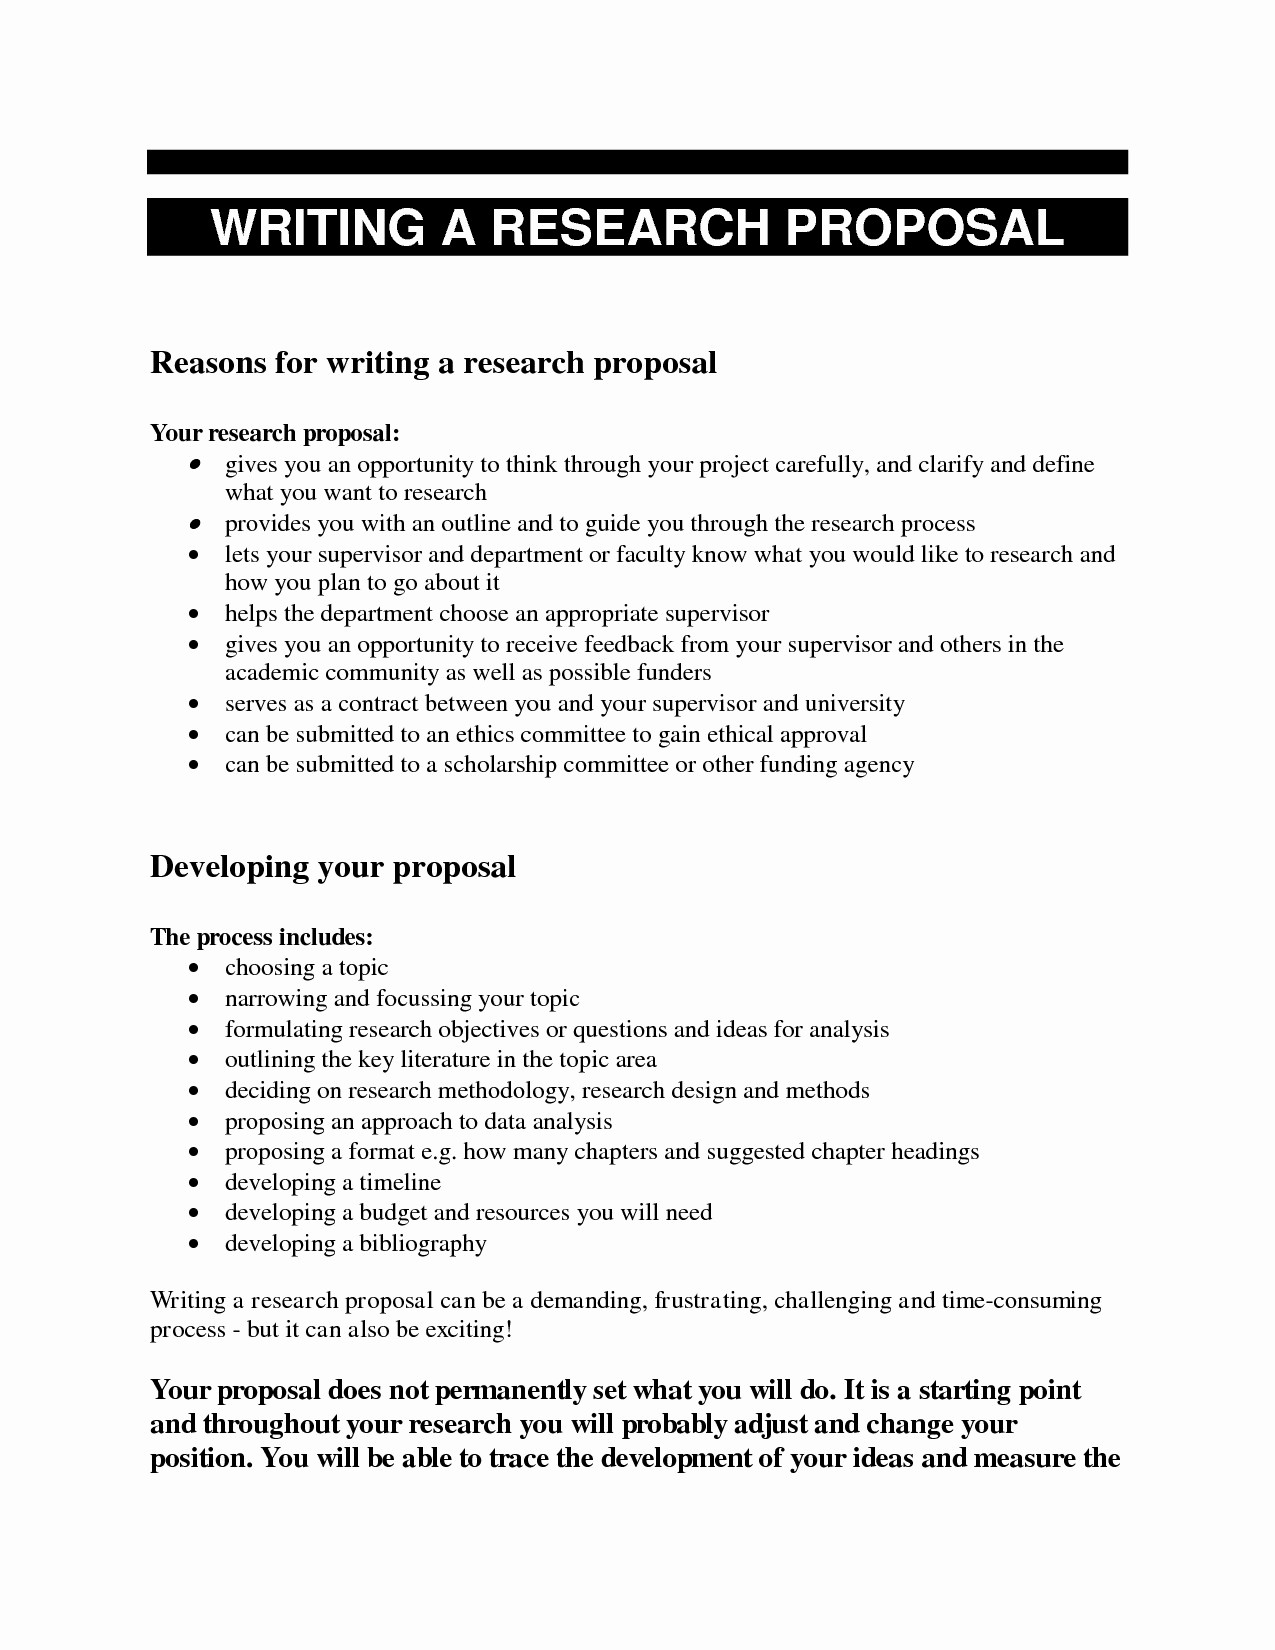 016 Research Proposal Example Mla Inspirational Essay Save Topics Juve Of Format Fearsome Paper In Education Topic Write 5 A Full